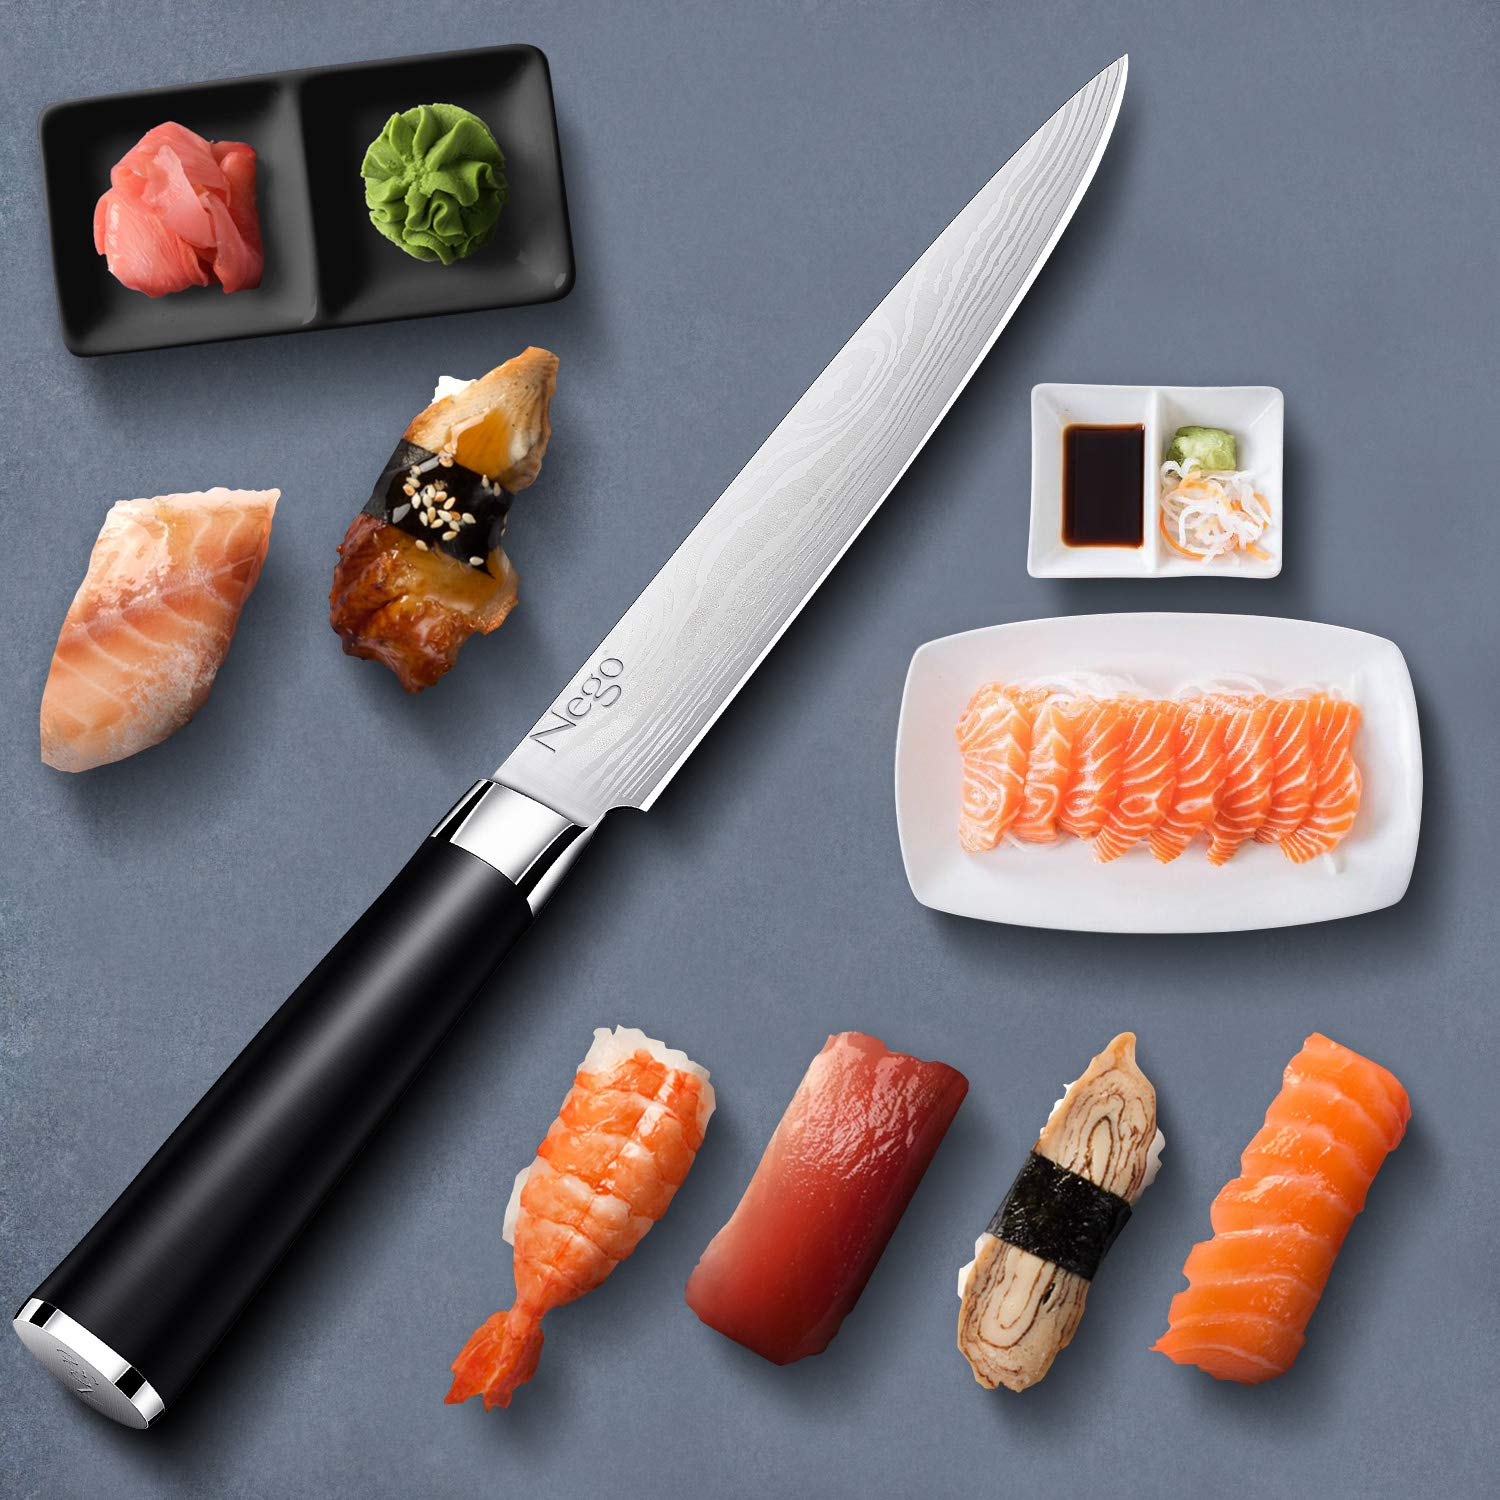 Sashimi Knife - Kitchen Knife - 8.5 Inch Chef's Knife - German High Carbon Stainless Steel With Ergonomic Handle Protective Finger Guard - Cooking Knife Chef Knives Vegetable Cleavers by Nego (Image #9)